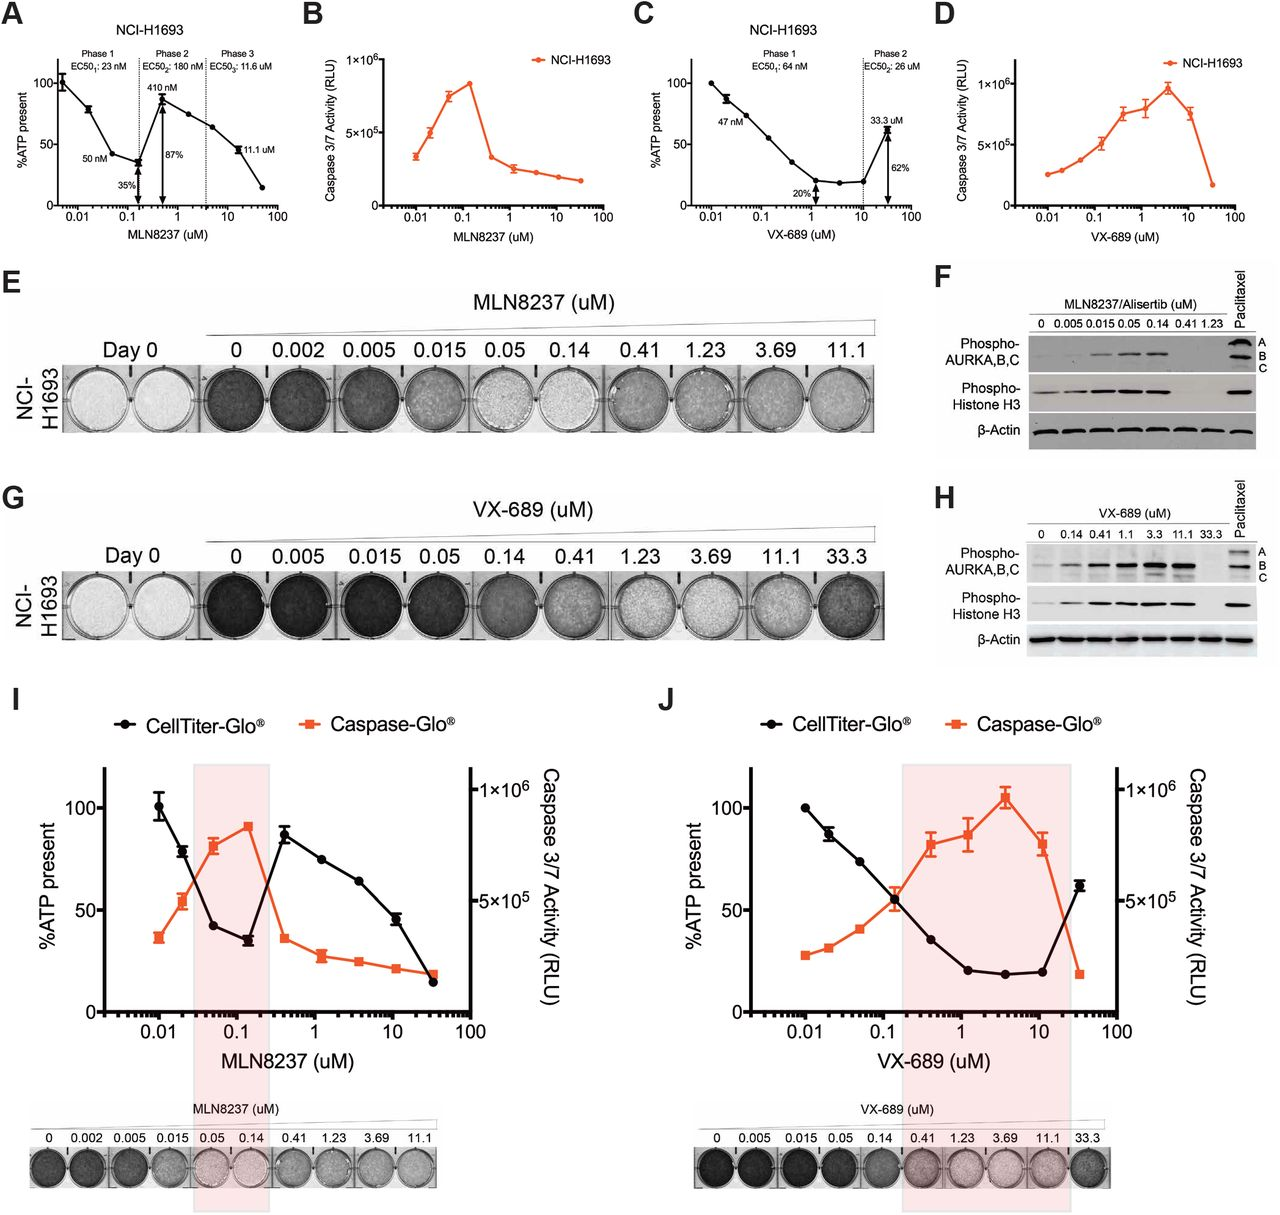 Aurora A inhibitors at higher concentrations antagonize their own cytotoxic activity and restore growth. a, NCI-H1693 cells were treated with serial concentrations of MLN8237 for four days and cell viability was measured with a CellTiter-Glo assay, which measures ATP. b, NCI-H1693 cell line was treated with serial concentrations of MLN8237 for two days and active apoptosis was measured with a CaspaseGlo 3/7 assay. c, d, CellTiter-Glo and CaspaseGlo 3/7 assays were repeated with VX-689 treatments. Data are means of triplicate biological replicates with s.d. Some error bars are smaller than the data symbols. e, NCI-H1693 cells were treated with serial concentrations of MLN8237 or g, VX-689 for seven days and cell growth quantified with a crystal violet staining assay. f, Cell lysates of NCI-H1693 cell line were collected 48-hours after treating with MLN8237 or h, VX-689 and immunoblotted to measure phosphorylated histone H3 and phosphorylated Aurora A, B, and C. Paclitaxel was used in both sets of immunoblots as positive control and B-Actin was used as internal immunoblotting control. i, j, Overlay of cell viability, caspase 3/7 activity and crystal violet staining images with immunoblotting results at Aurora A kinase selective and non-selective (pan-Aurora kinase) inhibitory concentrations of MLN8237 and VX-689.